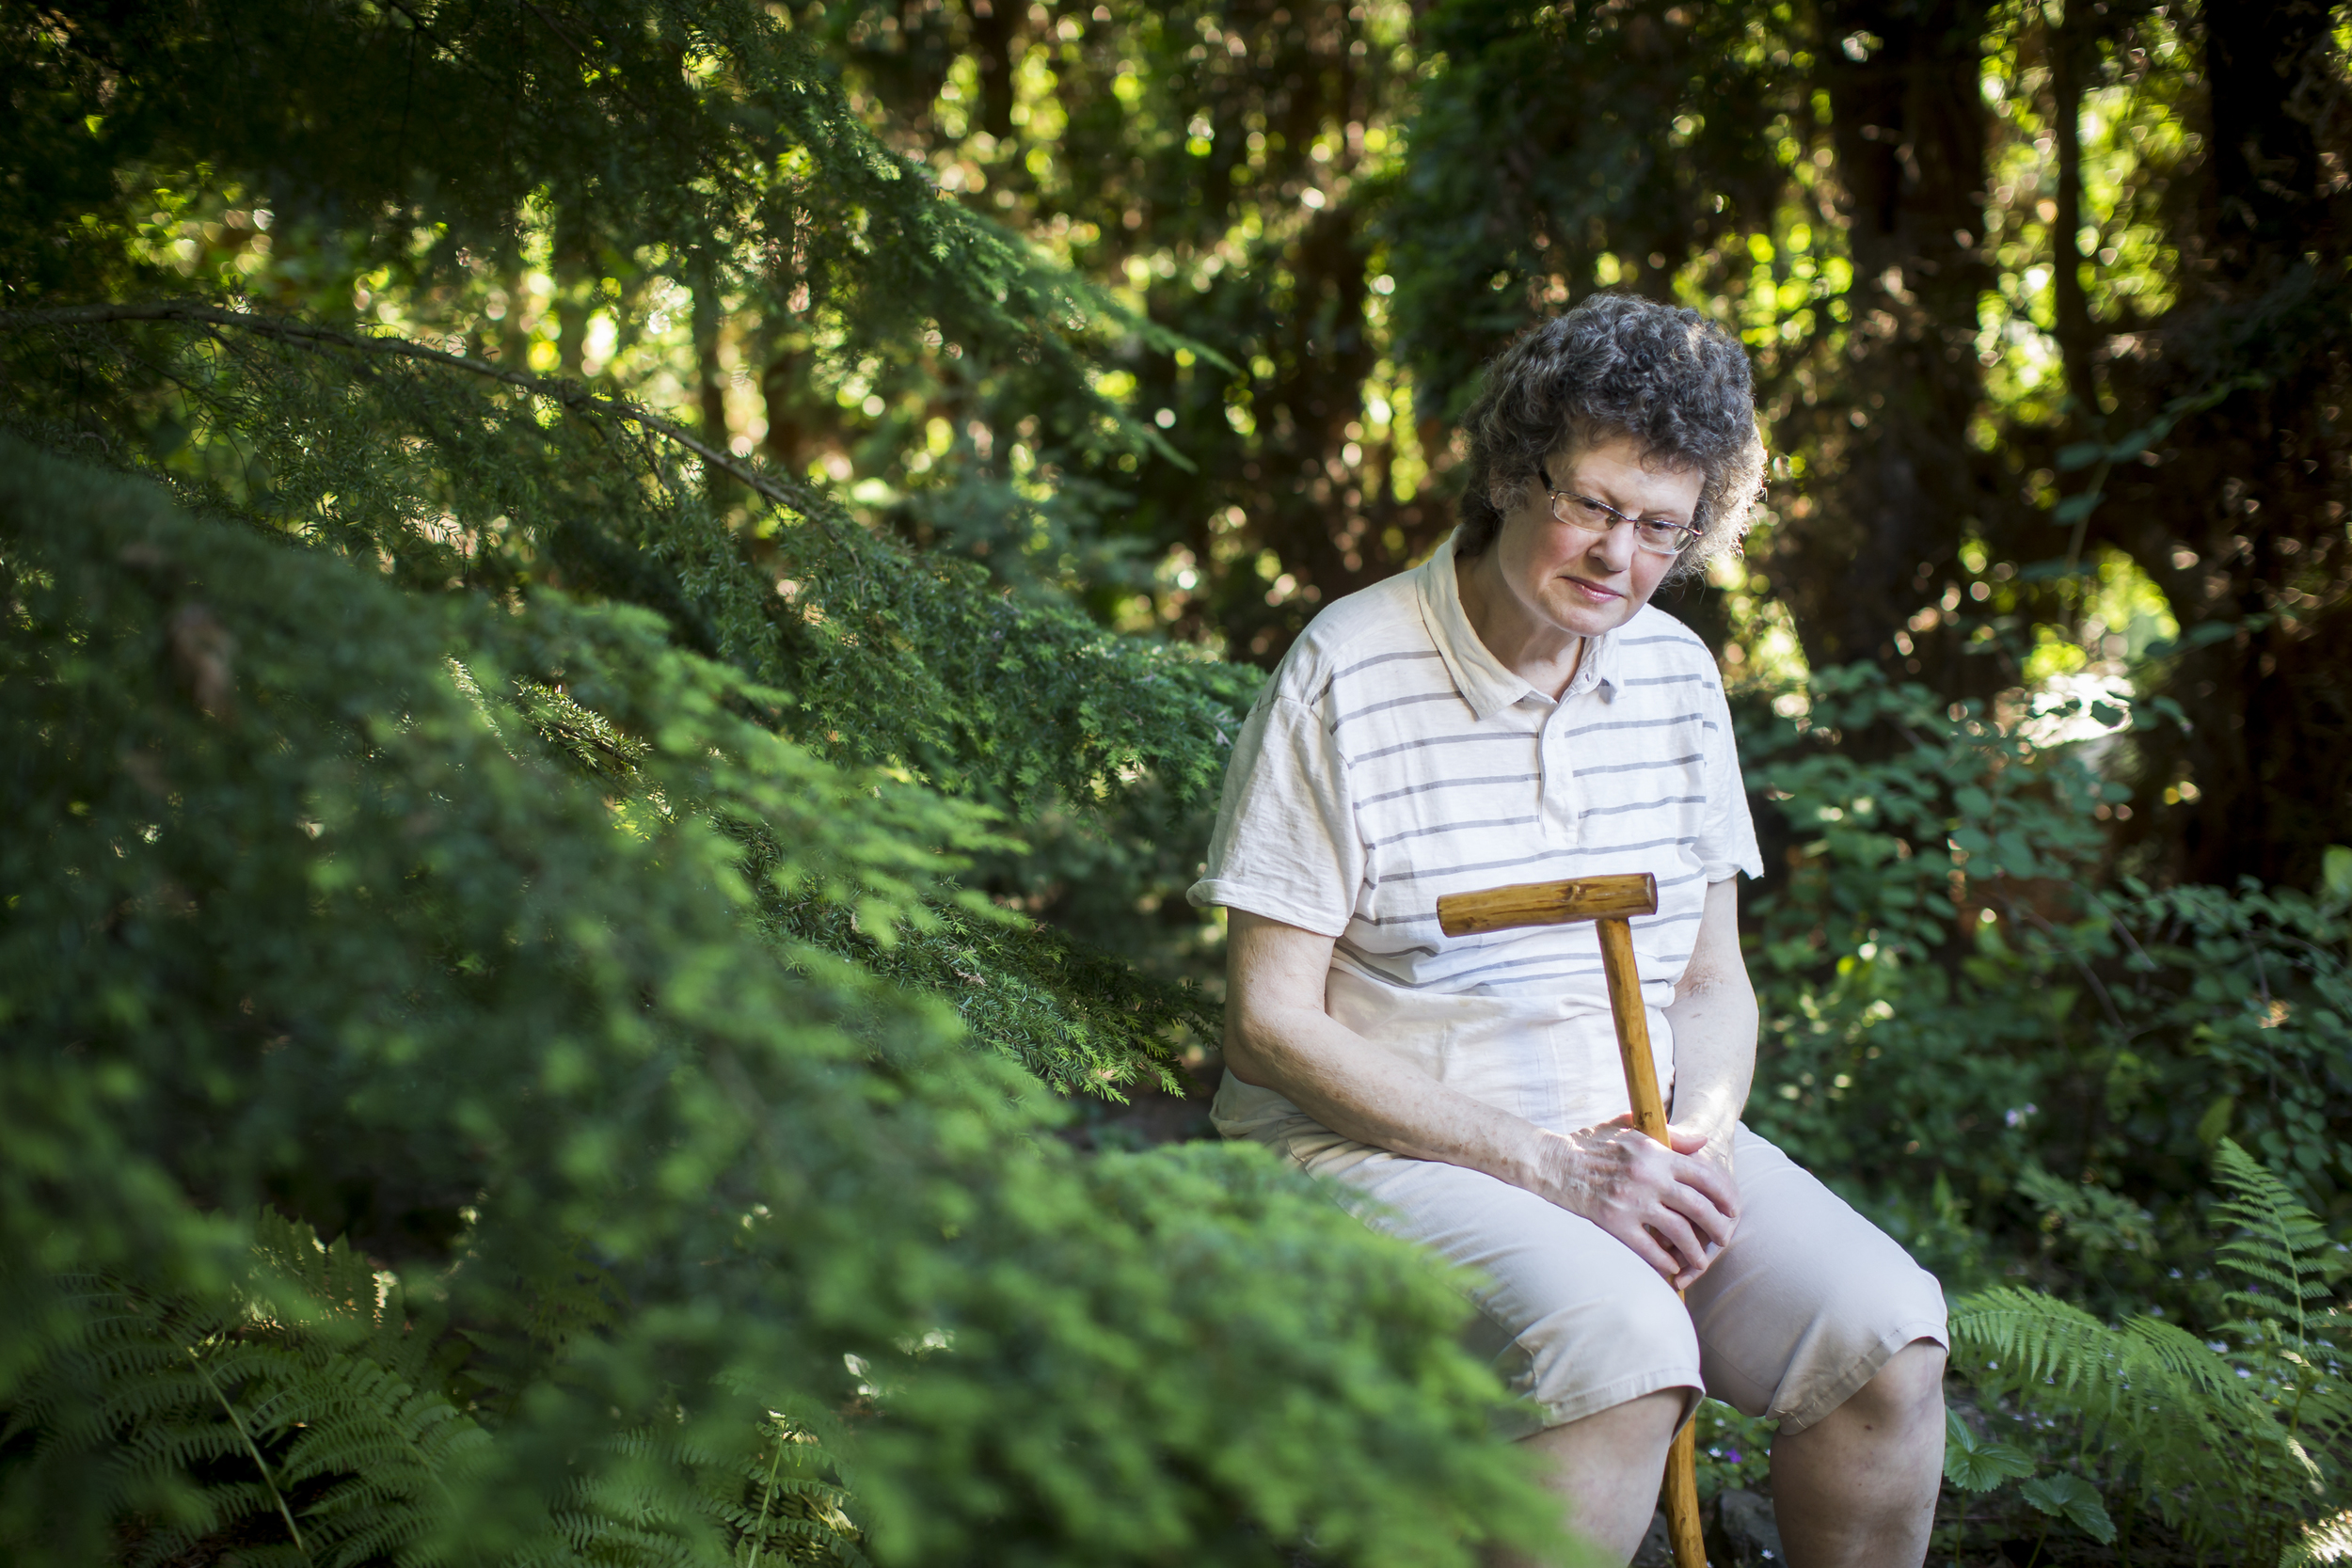 On Sunday, June 7, 2015 Kathleen McCann poses for a portrait in the backyard of her home in Portland, OR.  McCann